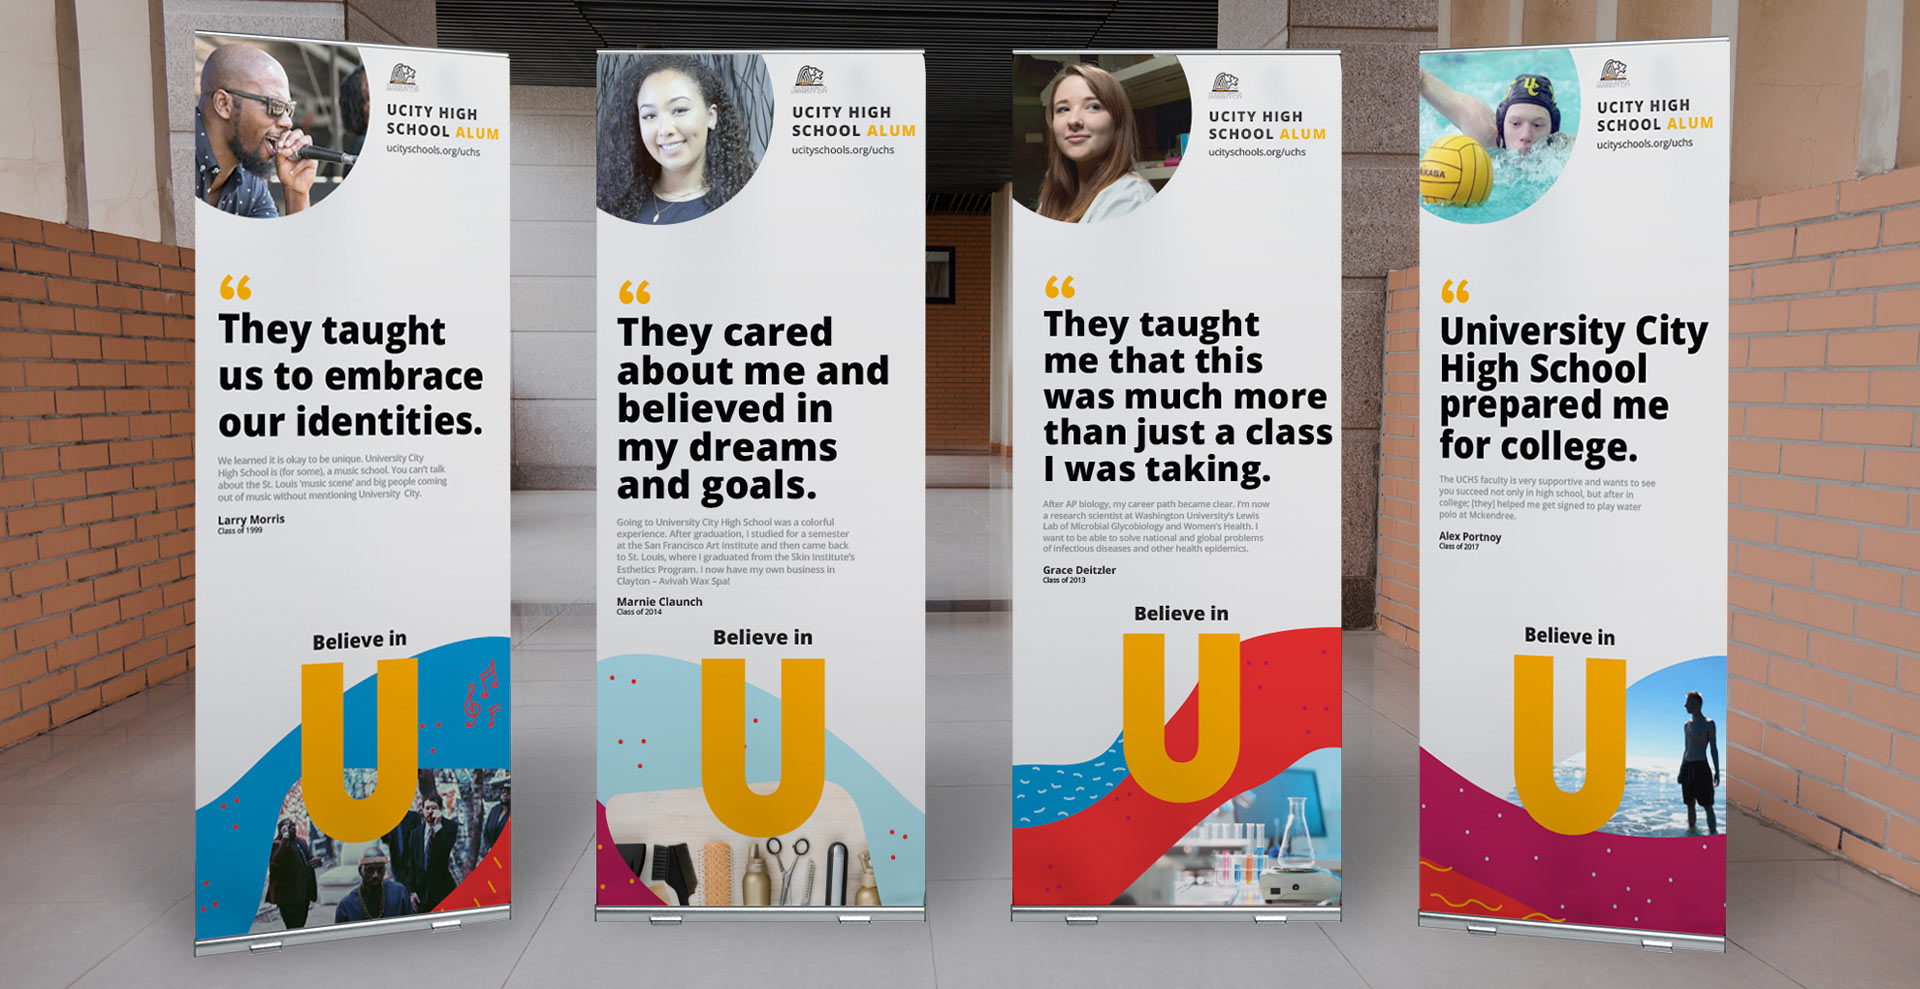 Branding and design on display banners for University City School District